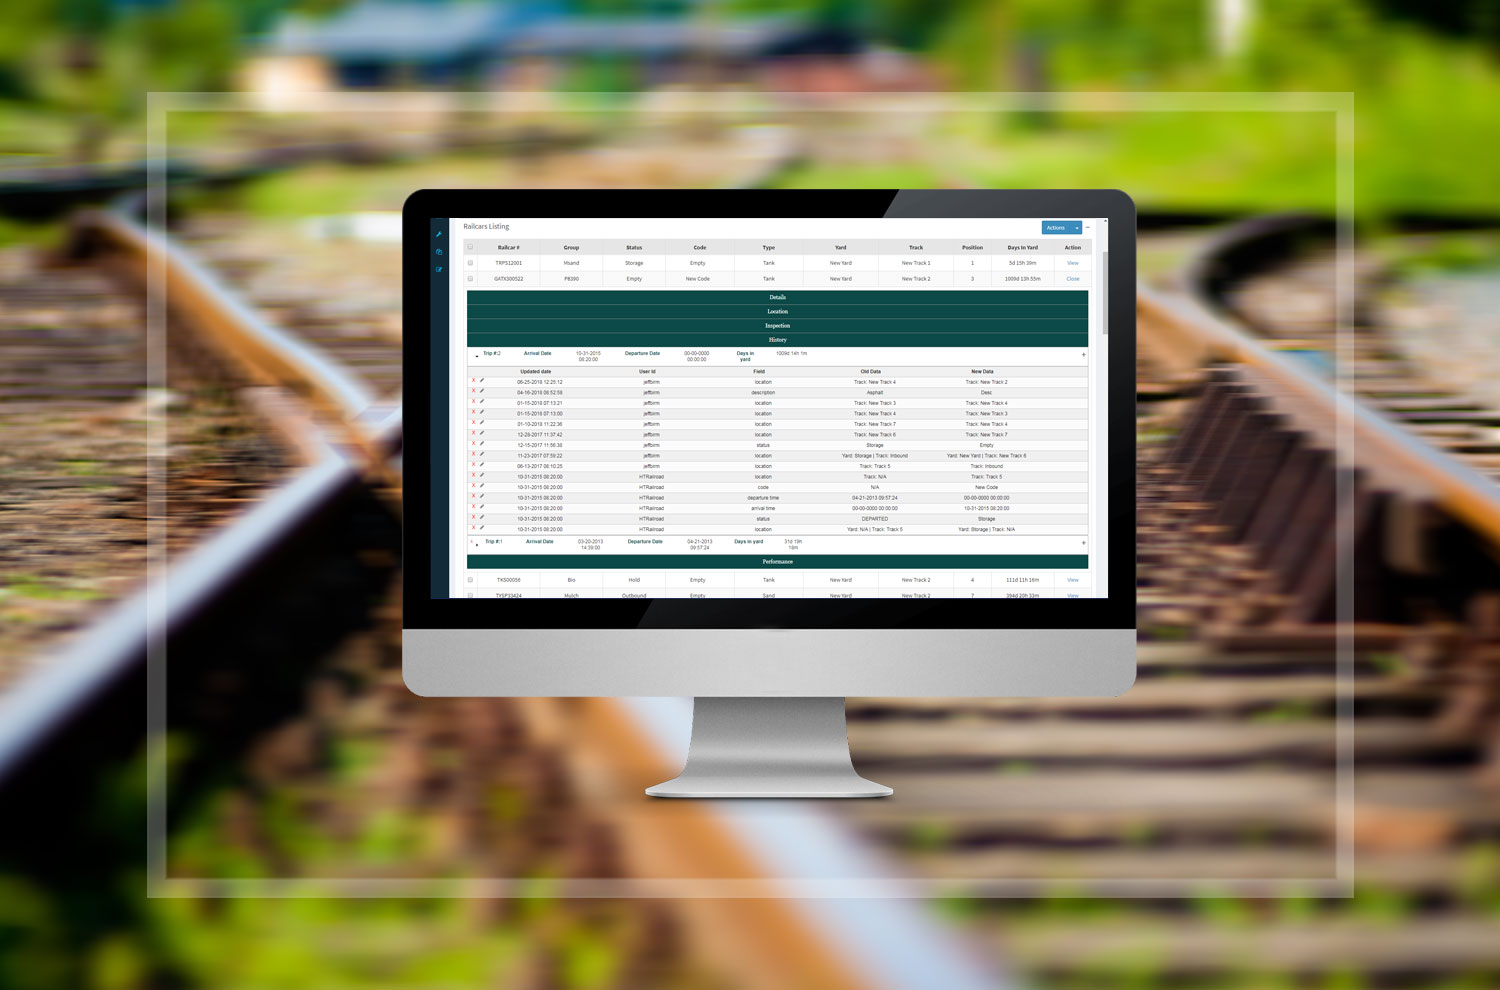 Railcar Historical Tracking gives administrators visibility into the actions of their employees and a view of the whole life cycle in a railcar facility within a trip